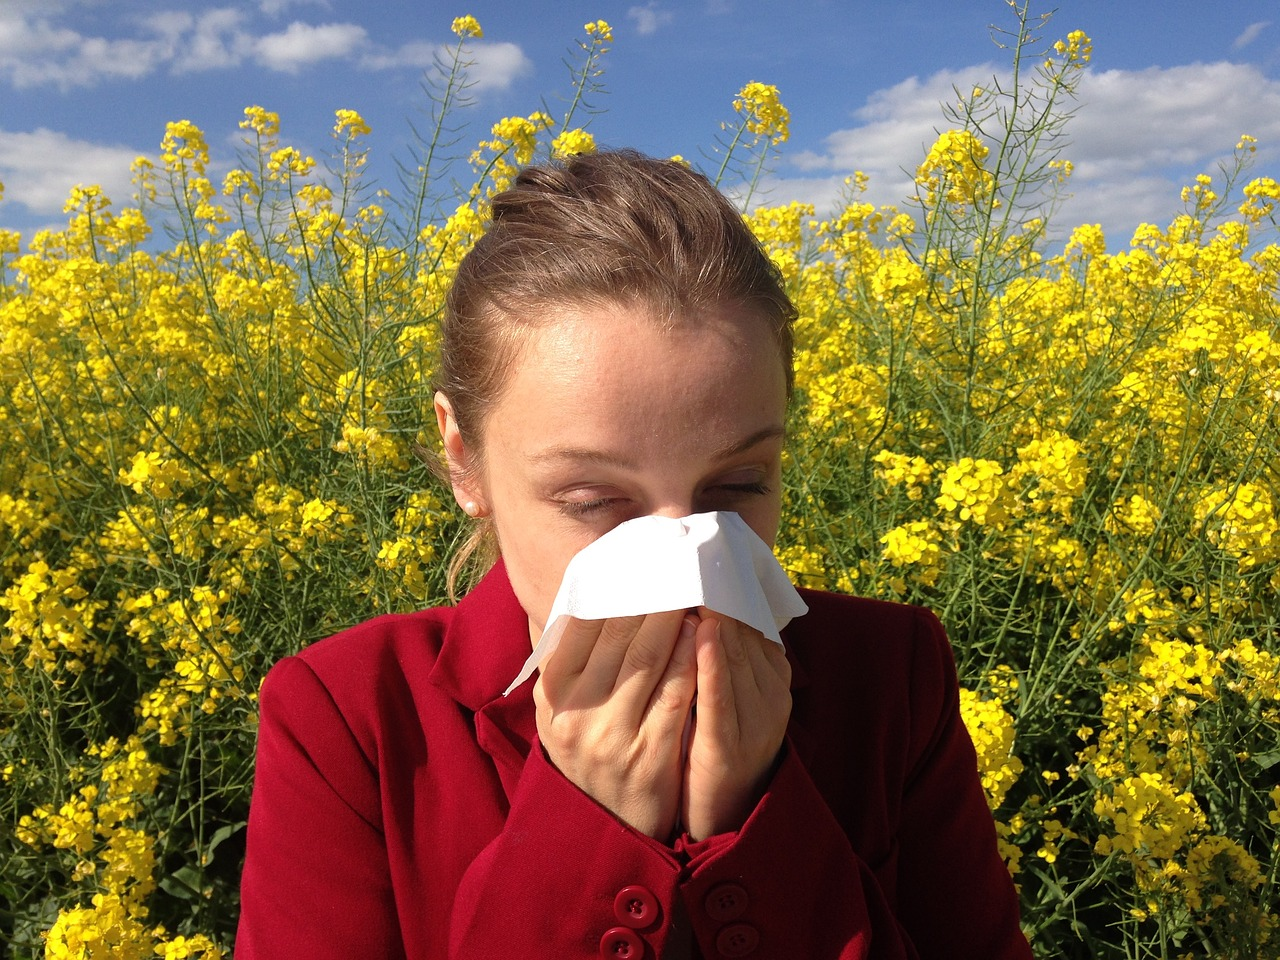 Are Allergy Shots Effective